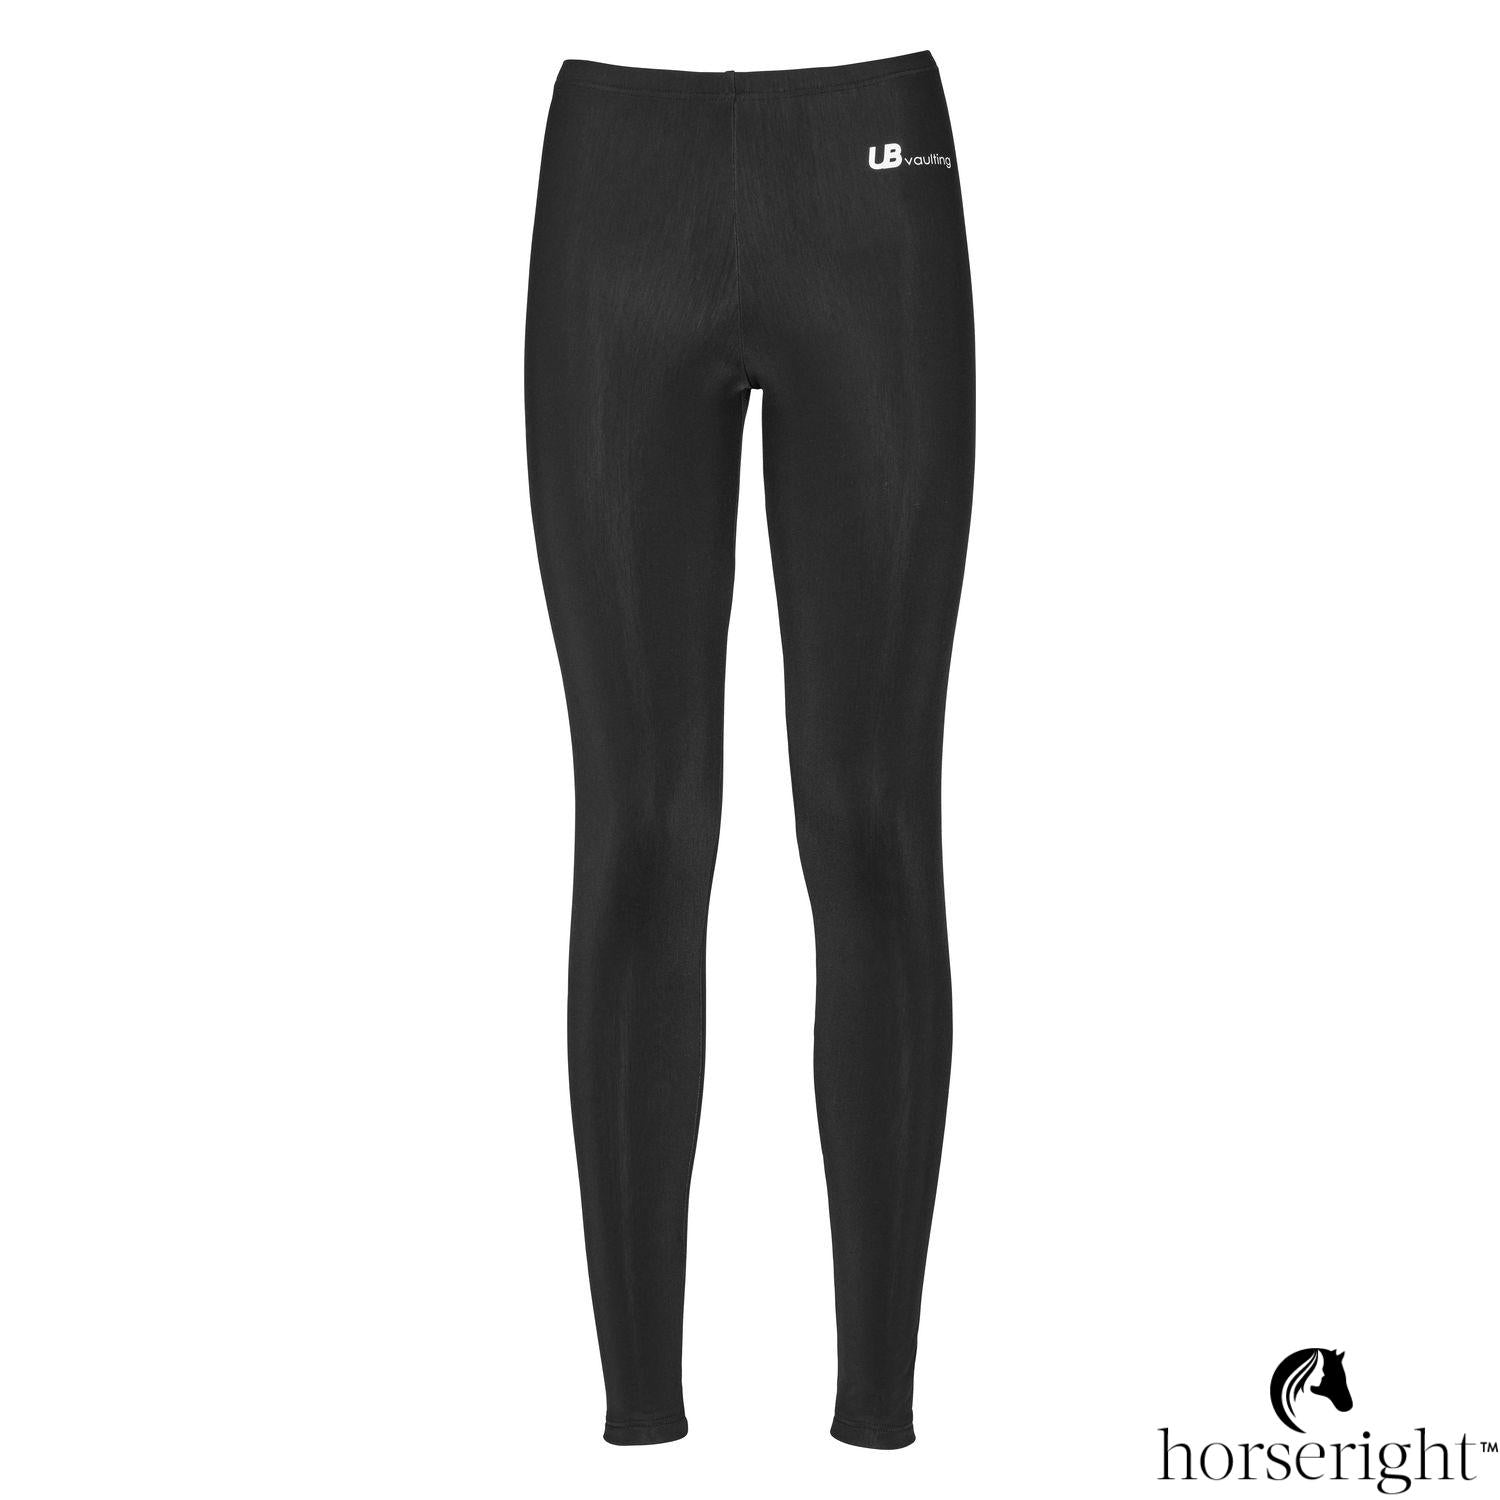 Ute Bächer Thermal Voltage Trousers For Children And Adults